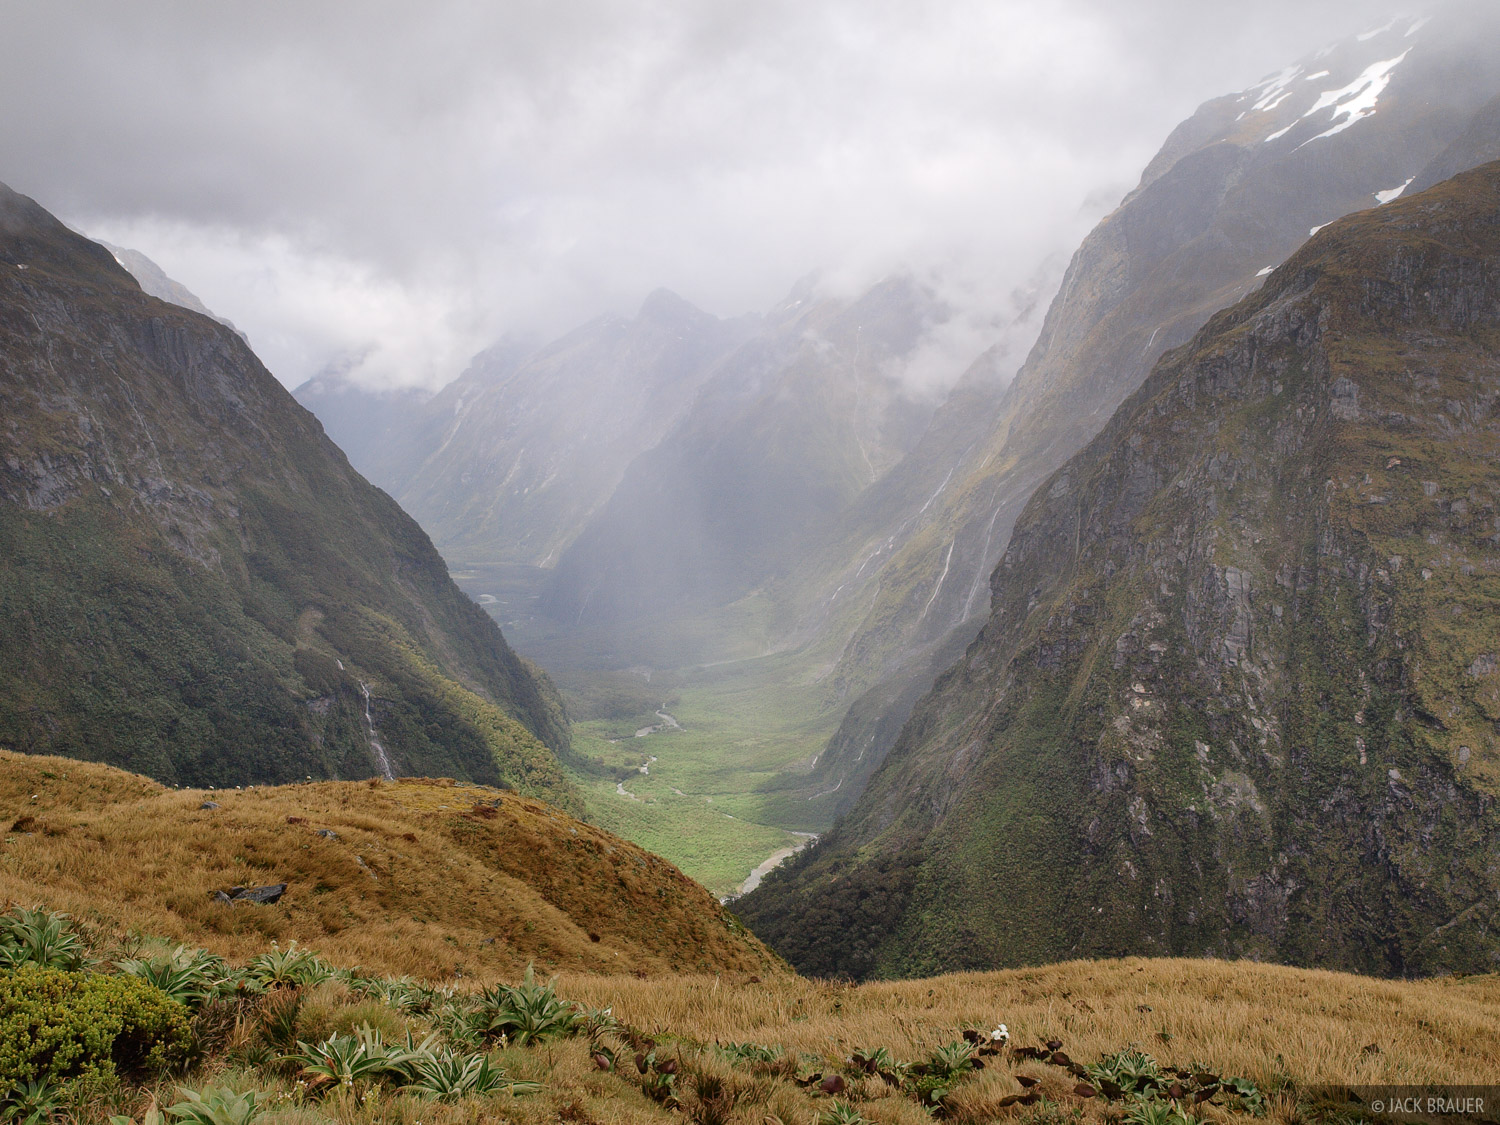 Looking down Clinton Canyon from Mackinnon Pass along the Milford Track.